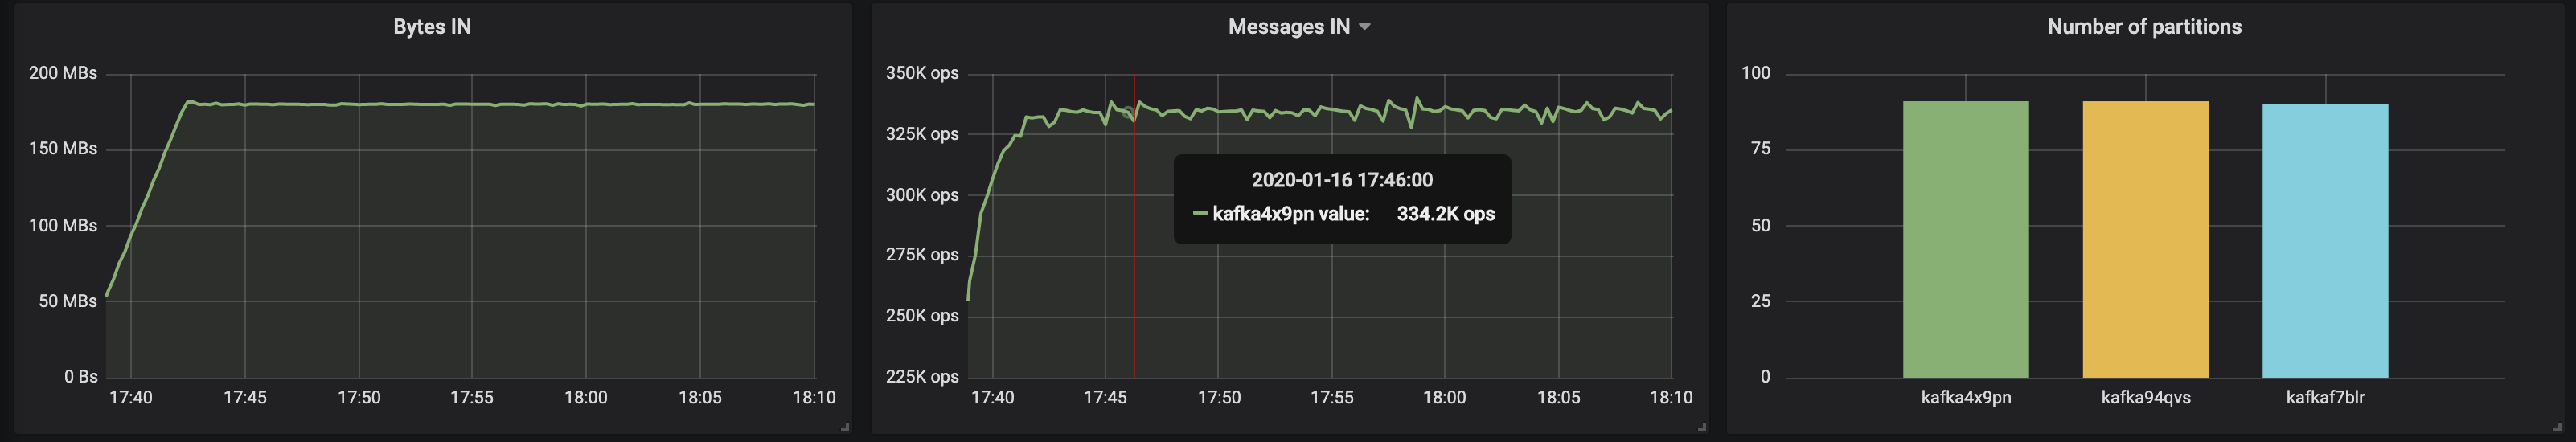 kafka4x9pn messages in